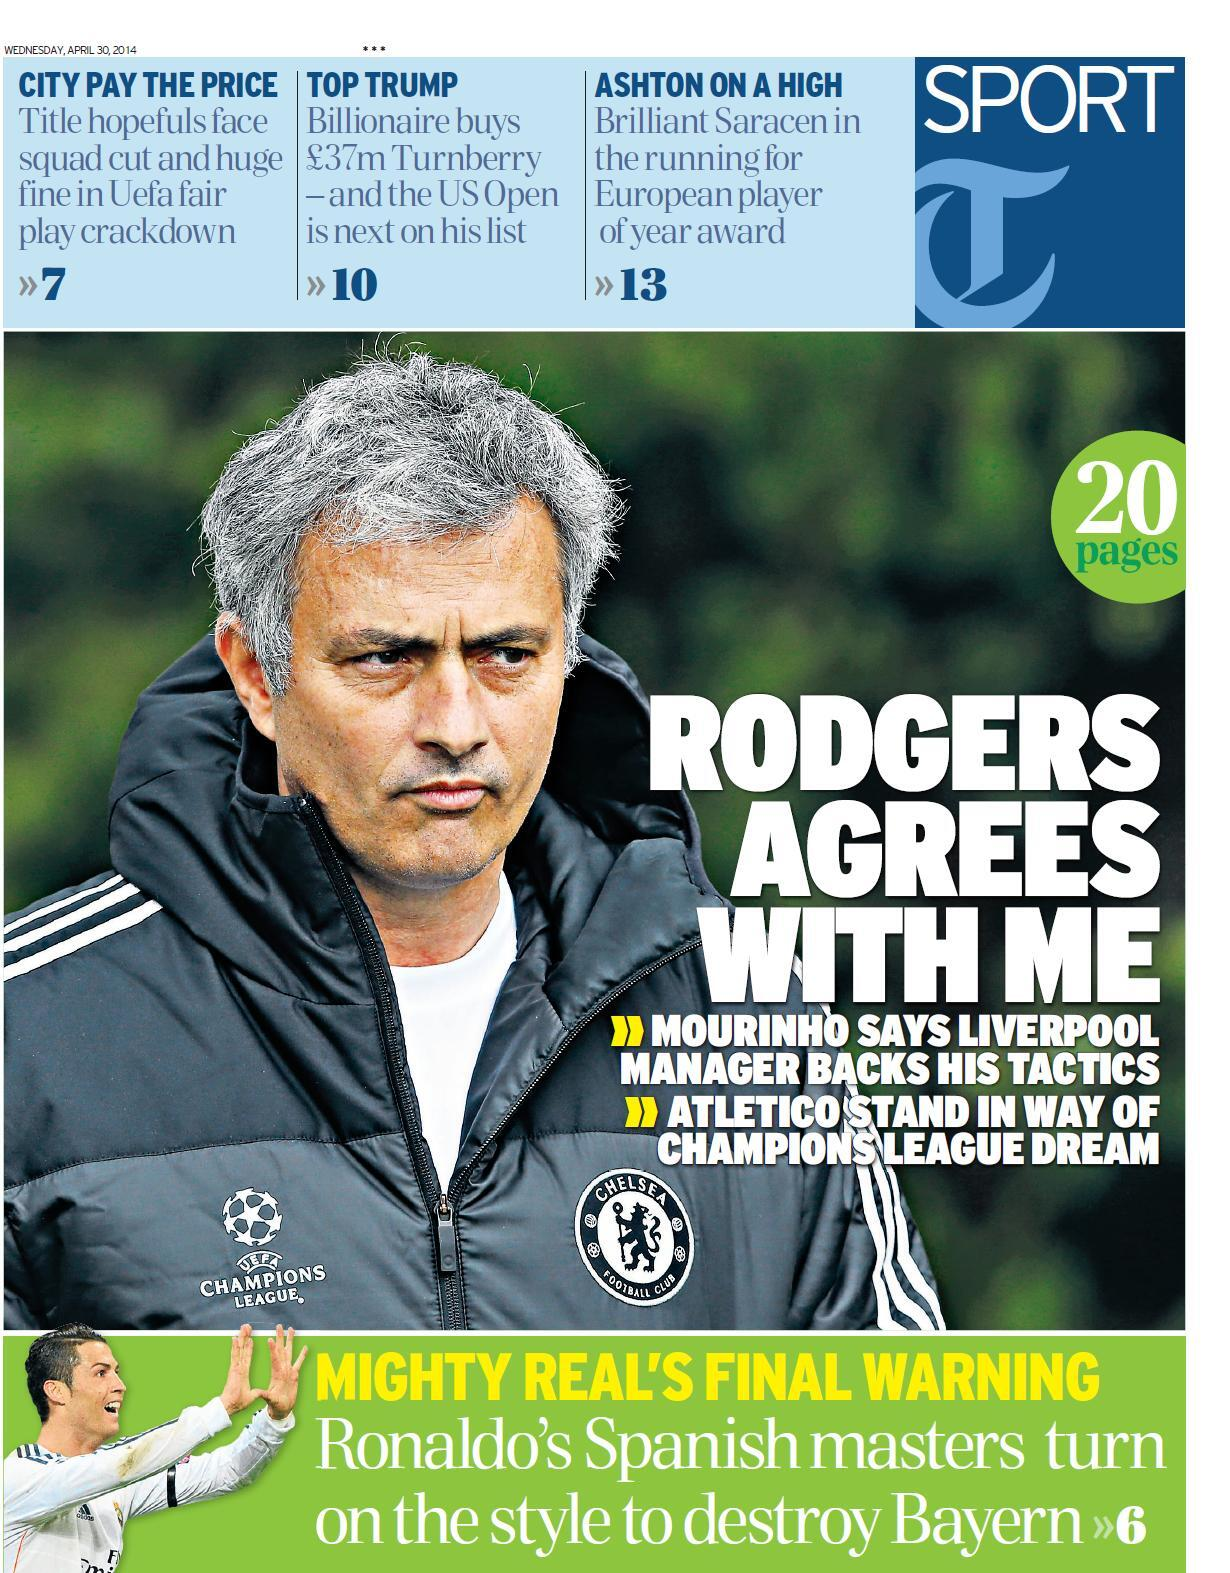 Jose Mourinho forgives Liverpool boss Brendan Rodgers for deriding his tactics [Wednesday Papers]